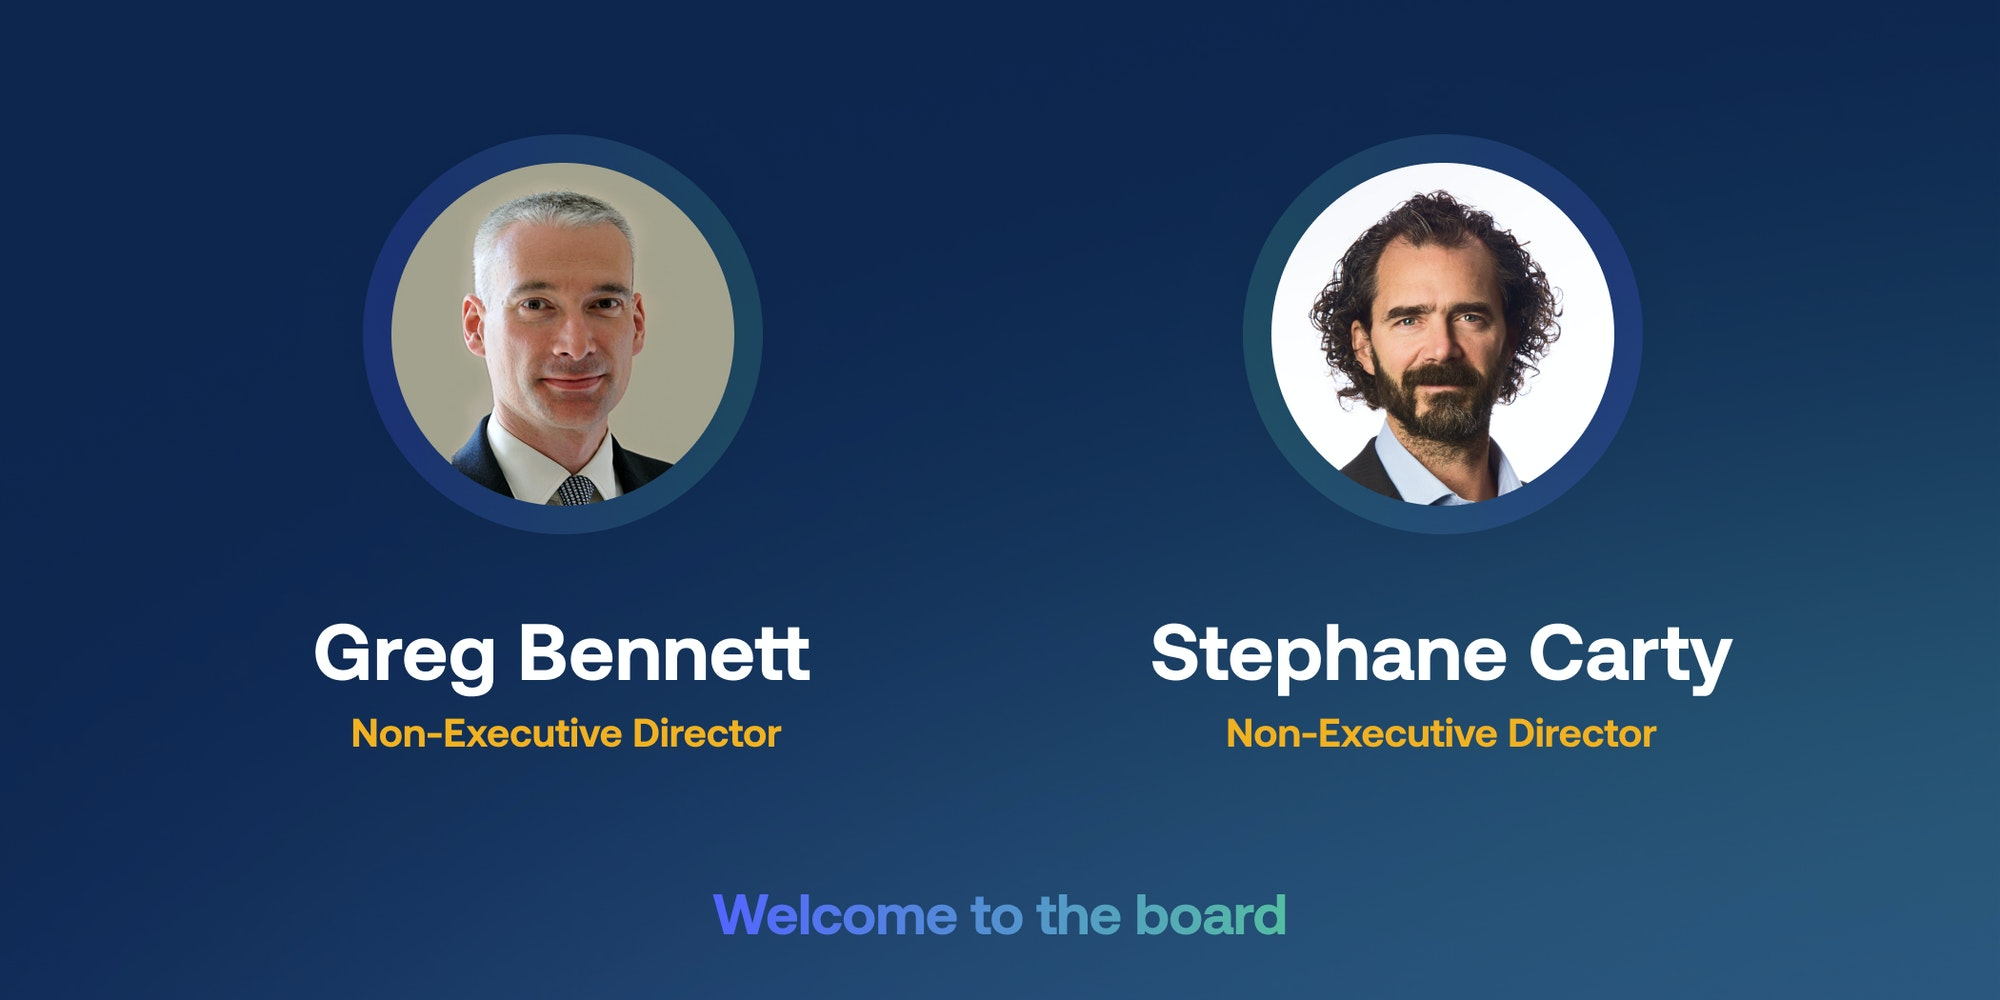 Cover Image for Appital Appoints Former Fidelity Head of Capital Markets Greg Bennett and Founder of Blackheath Capital Management Stephane Carty as Non-Executive Directors